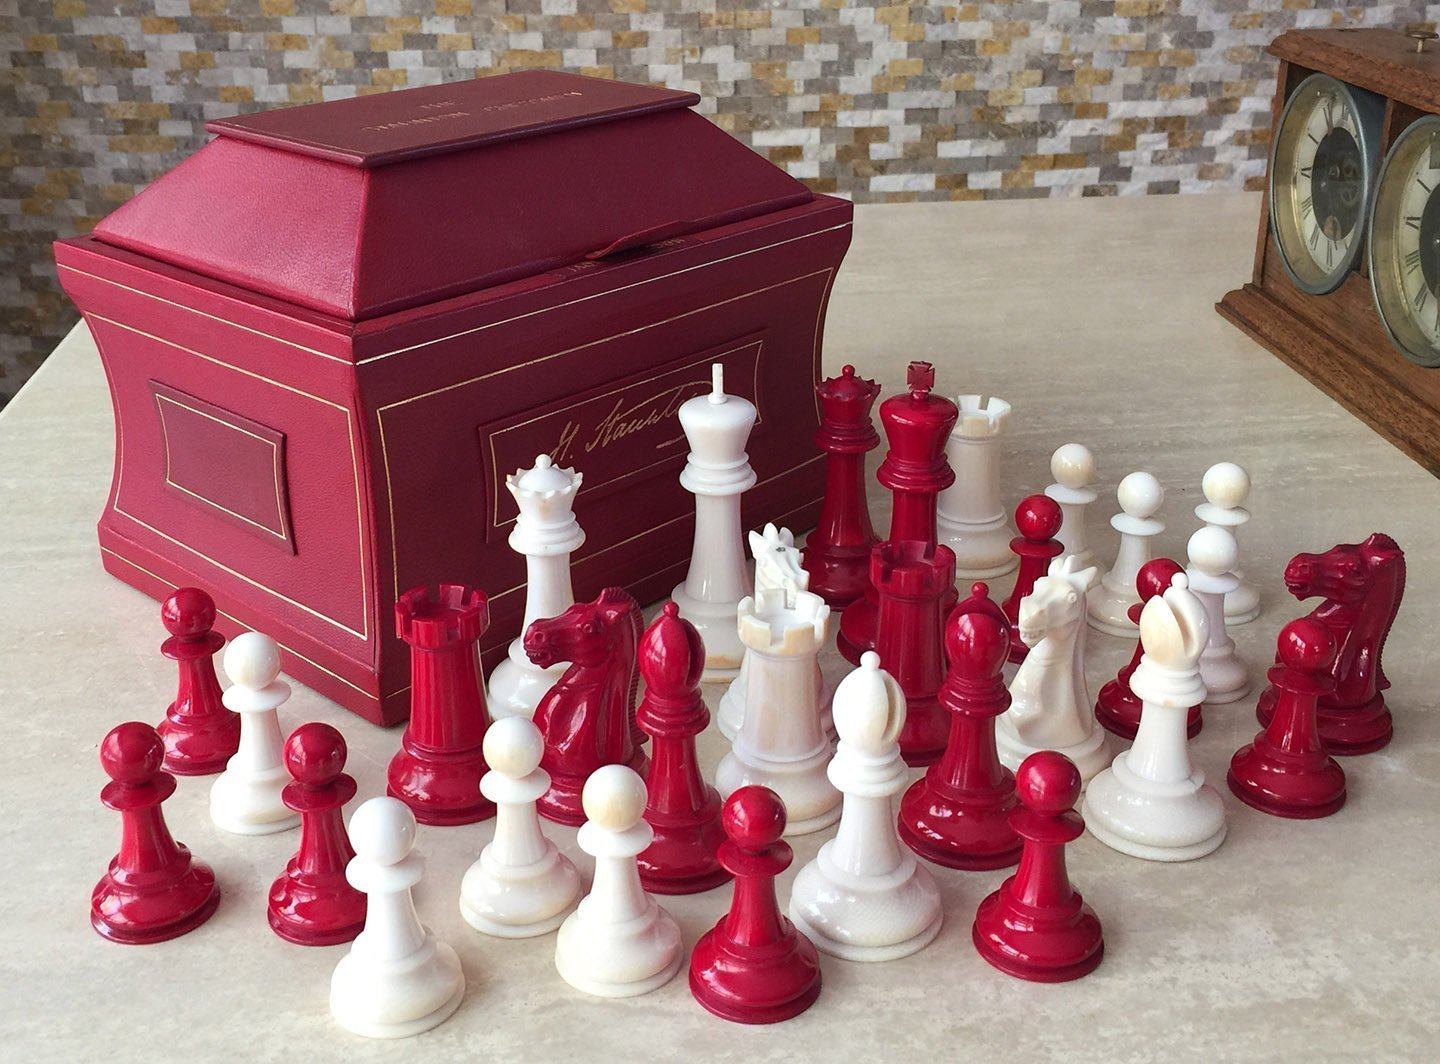 Jaques Ivory Marshall Chess Set, Club Size